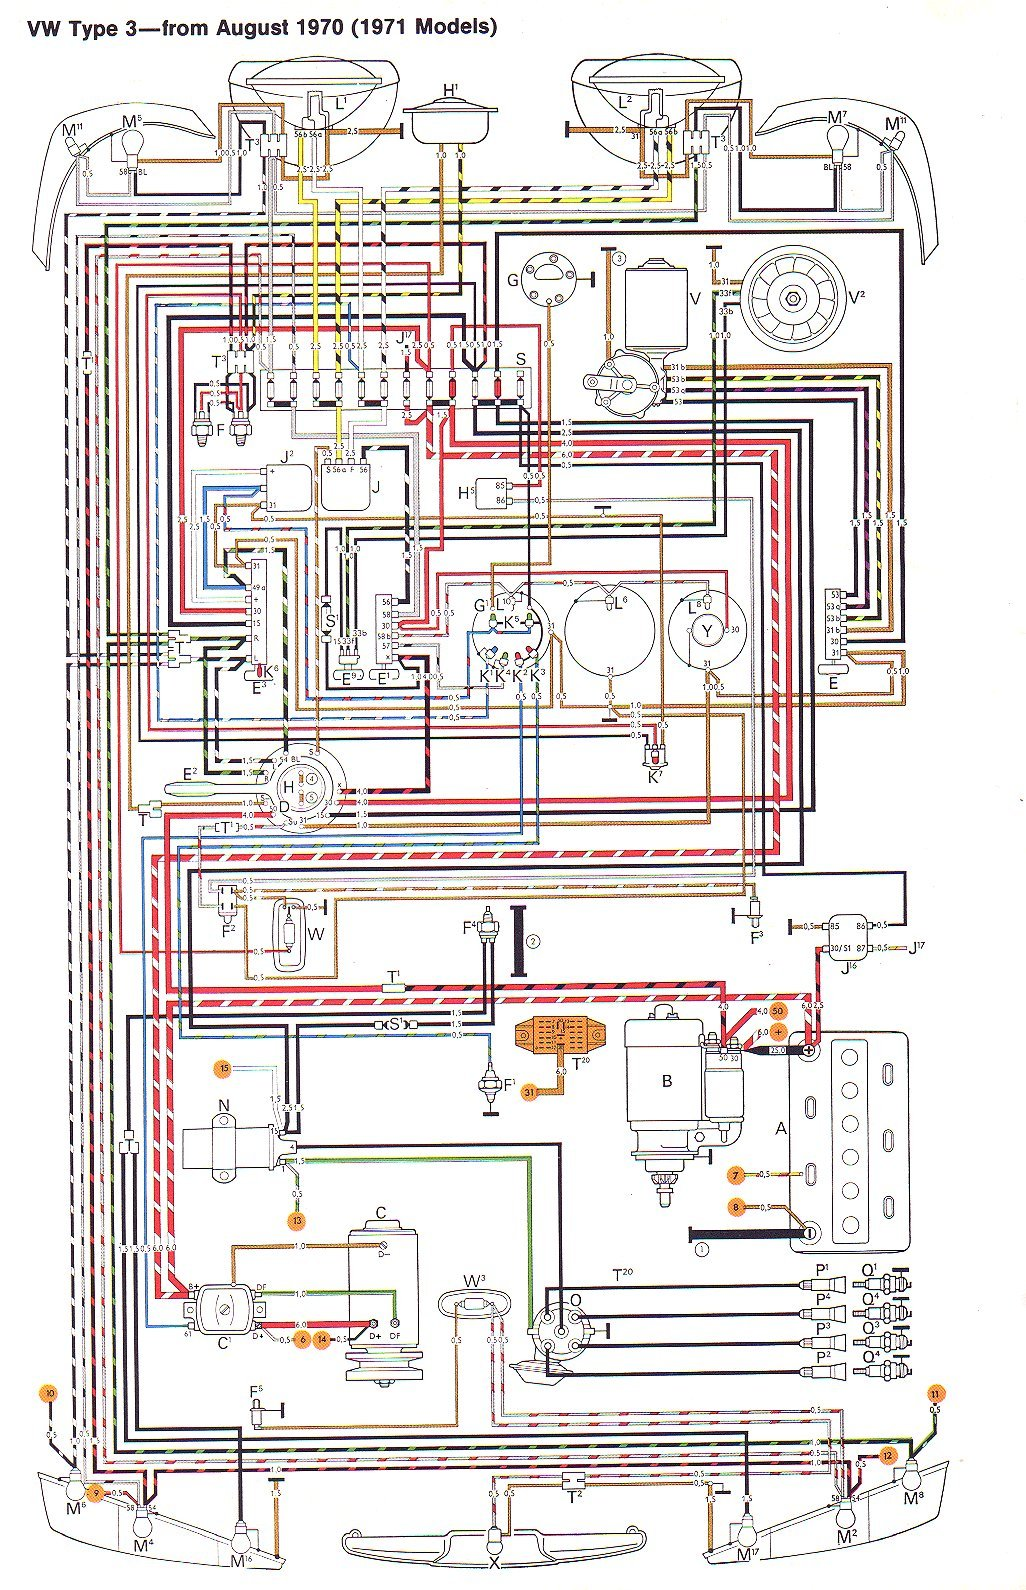 vw type 3 wiring diagrams rh hallvw clara net 1968 vw type 3 wiring diagram 1971 vw type 3 wiring diagram